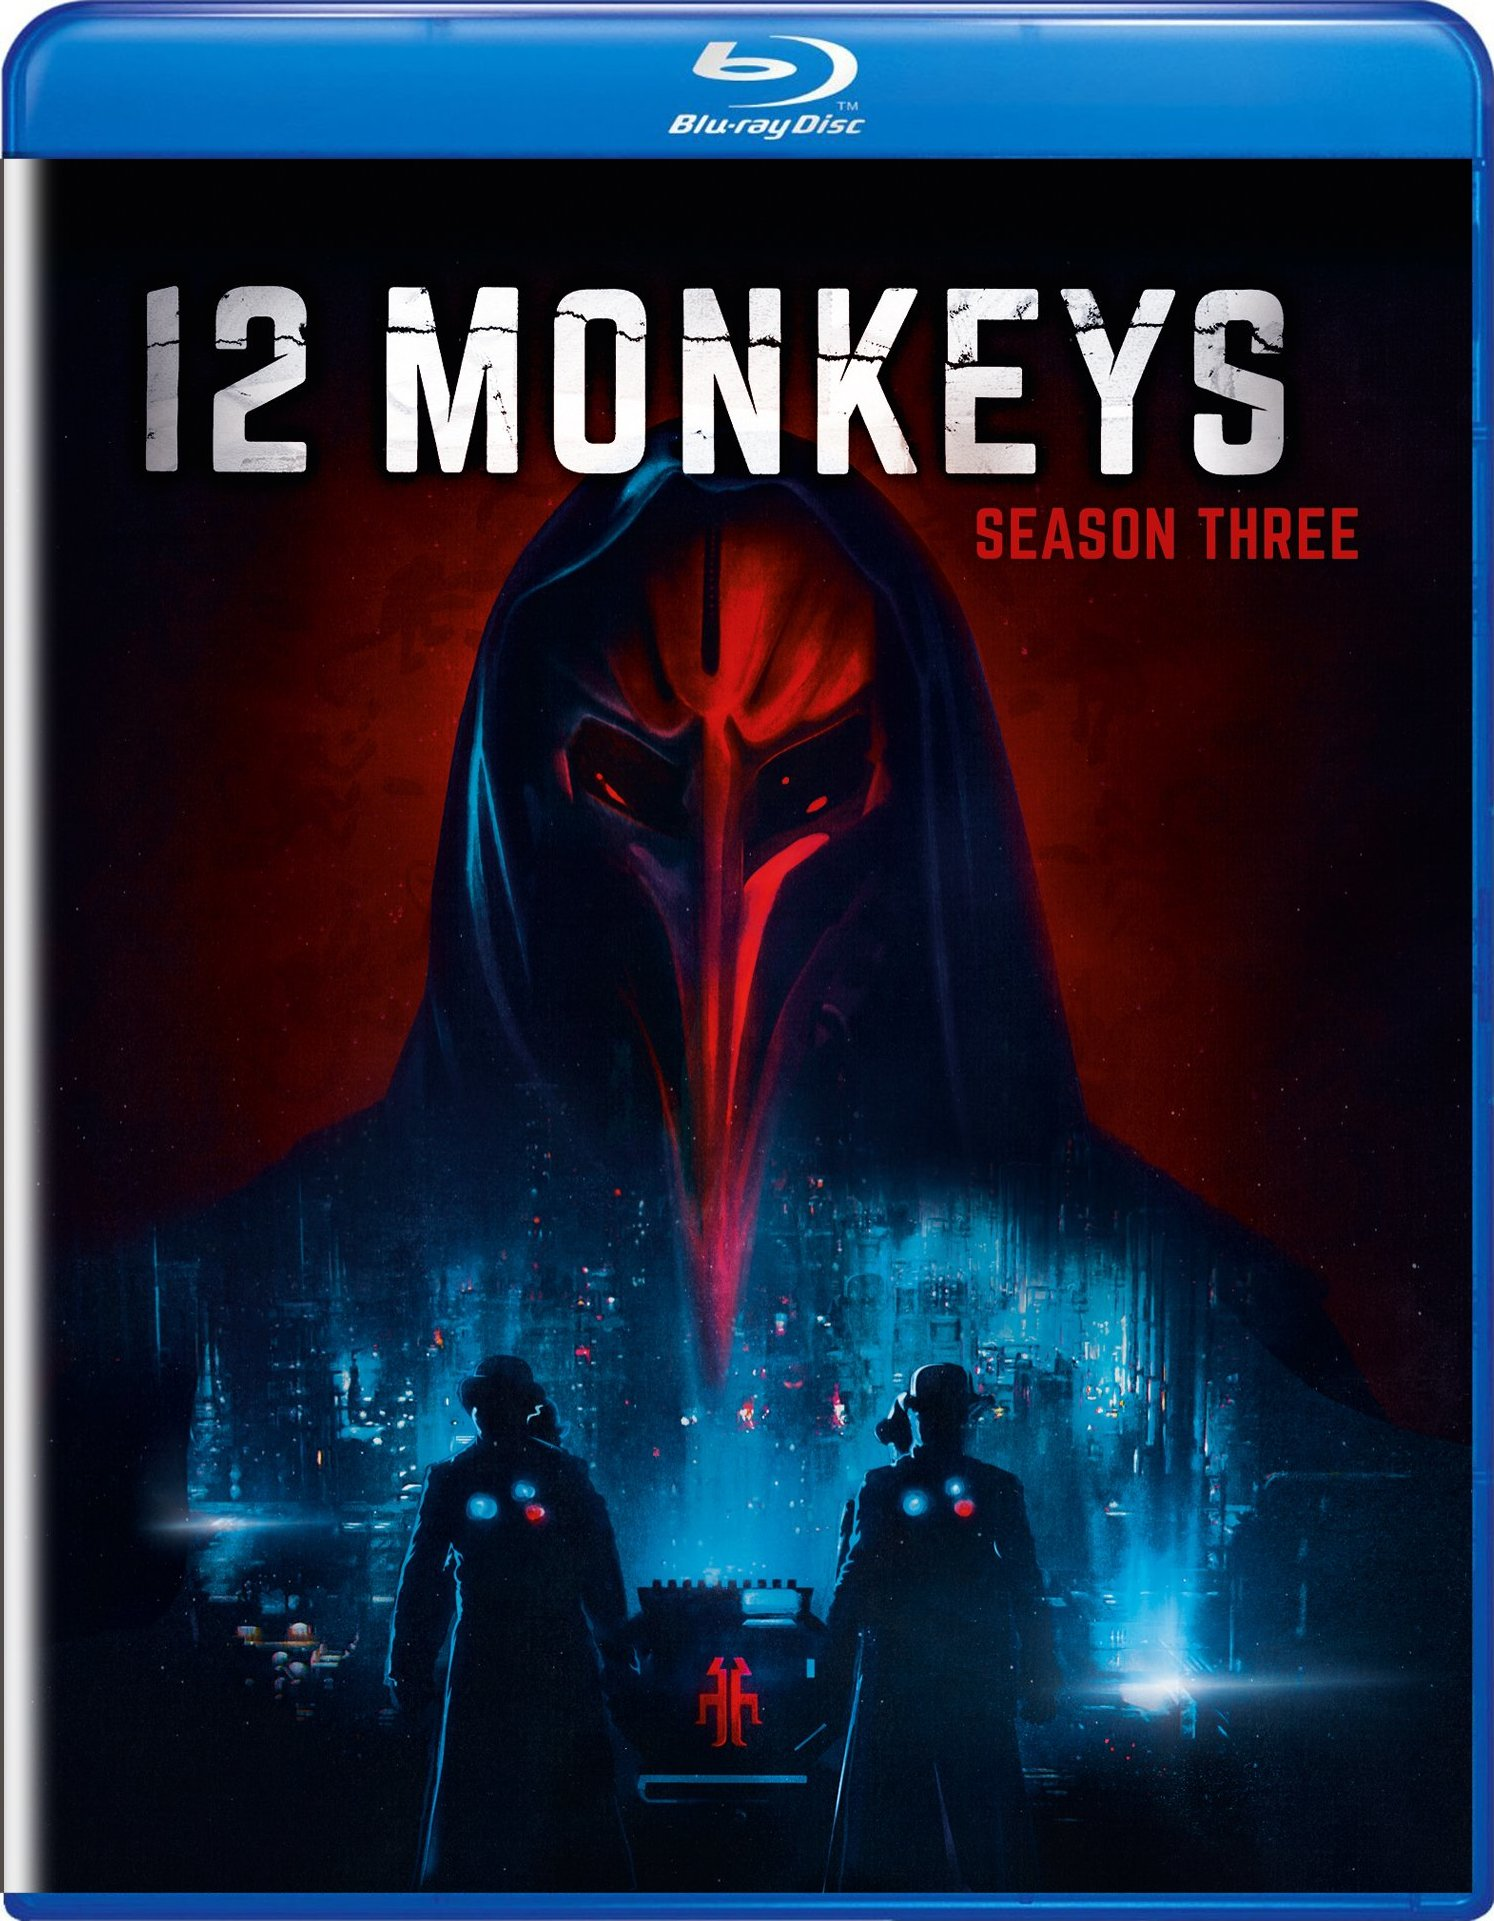 12 Monkeys: Season Three (Blu-ray)(Region A)